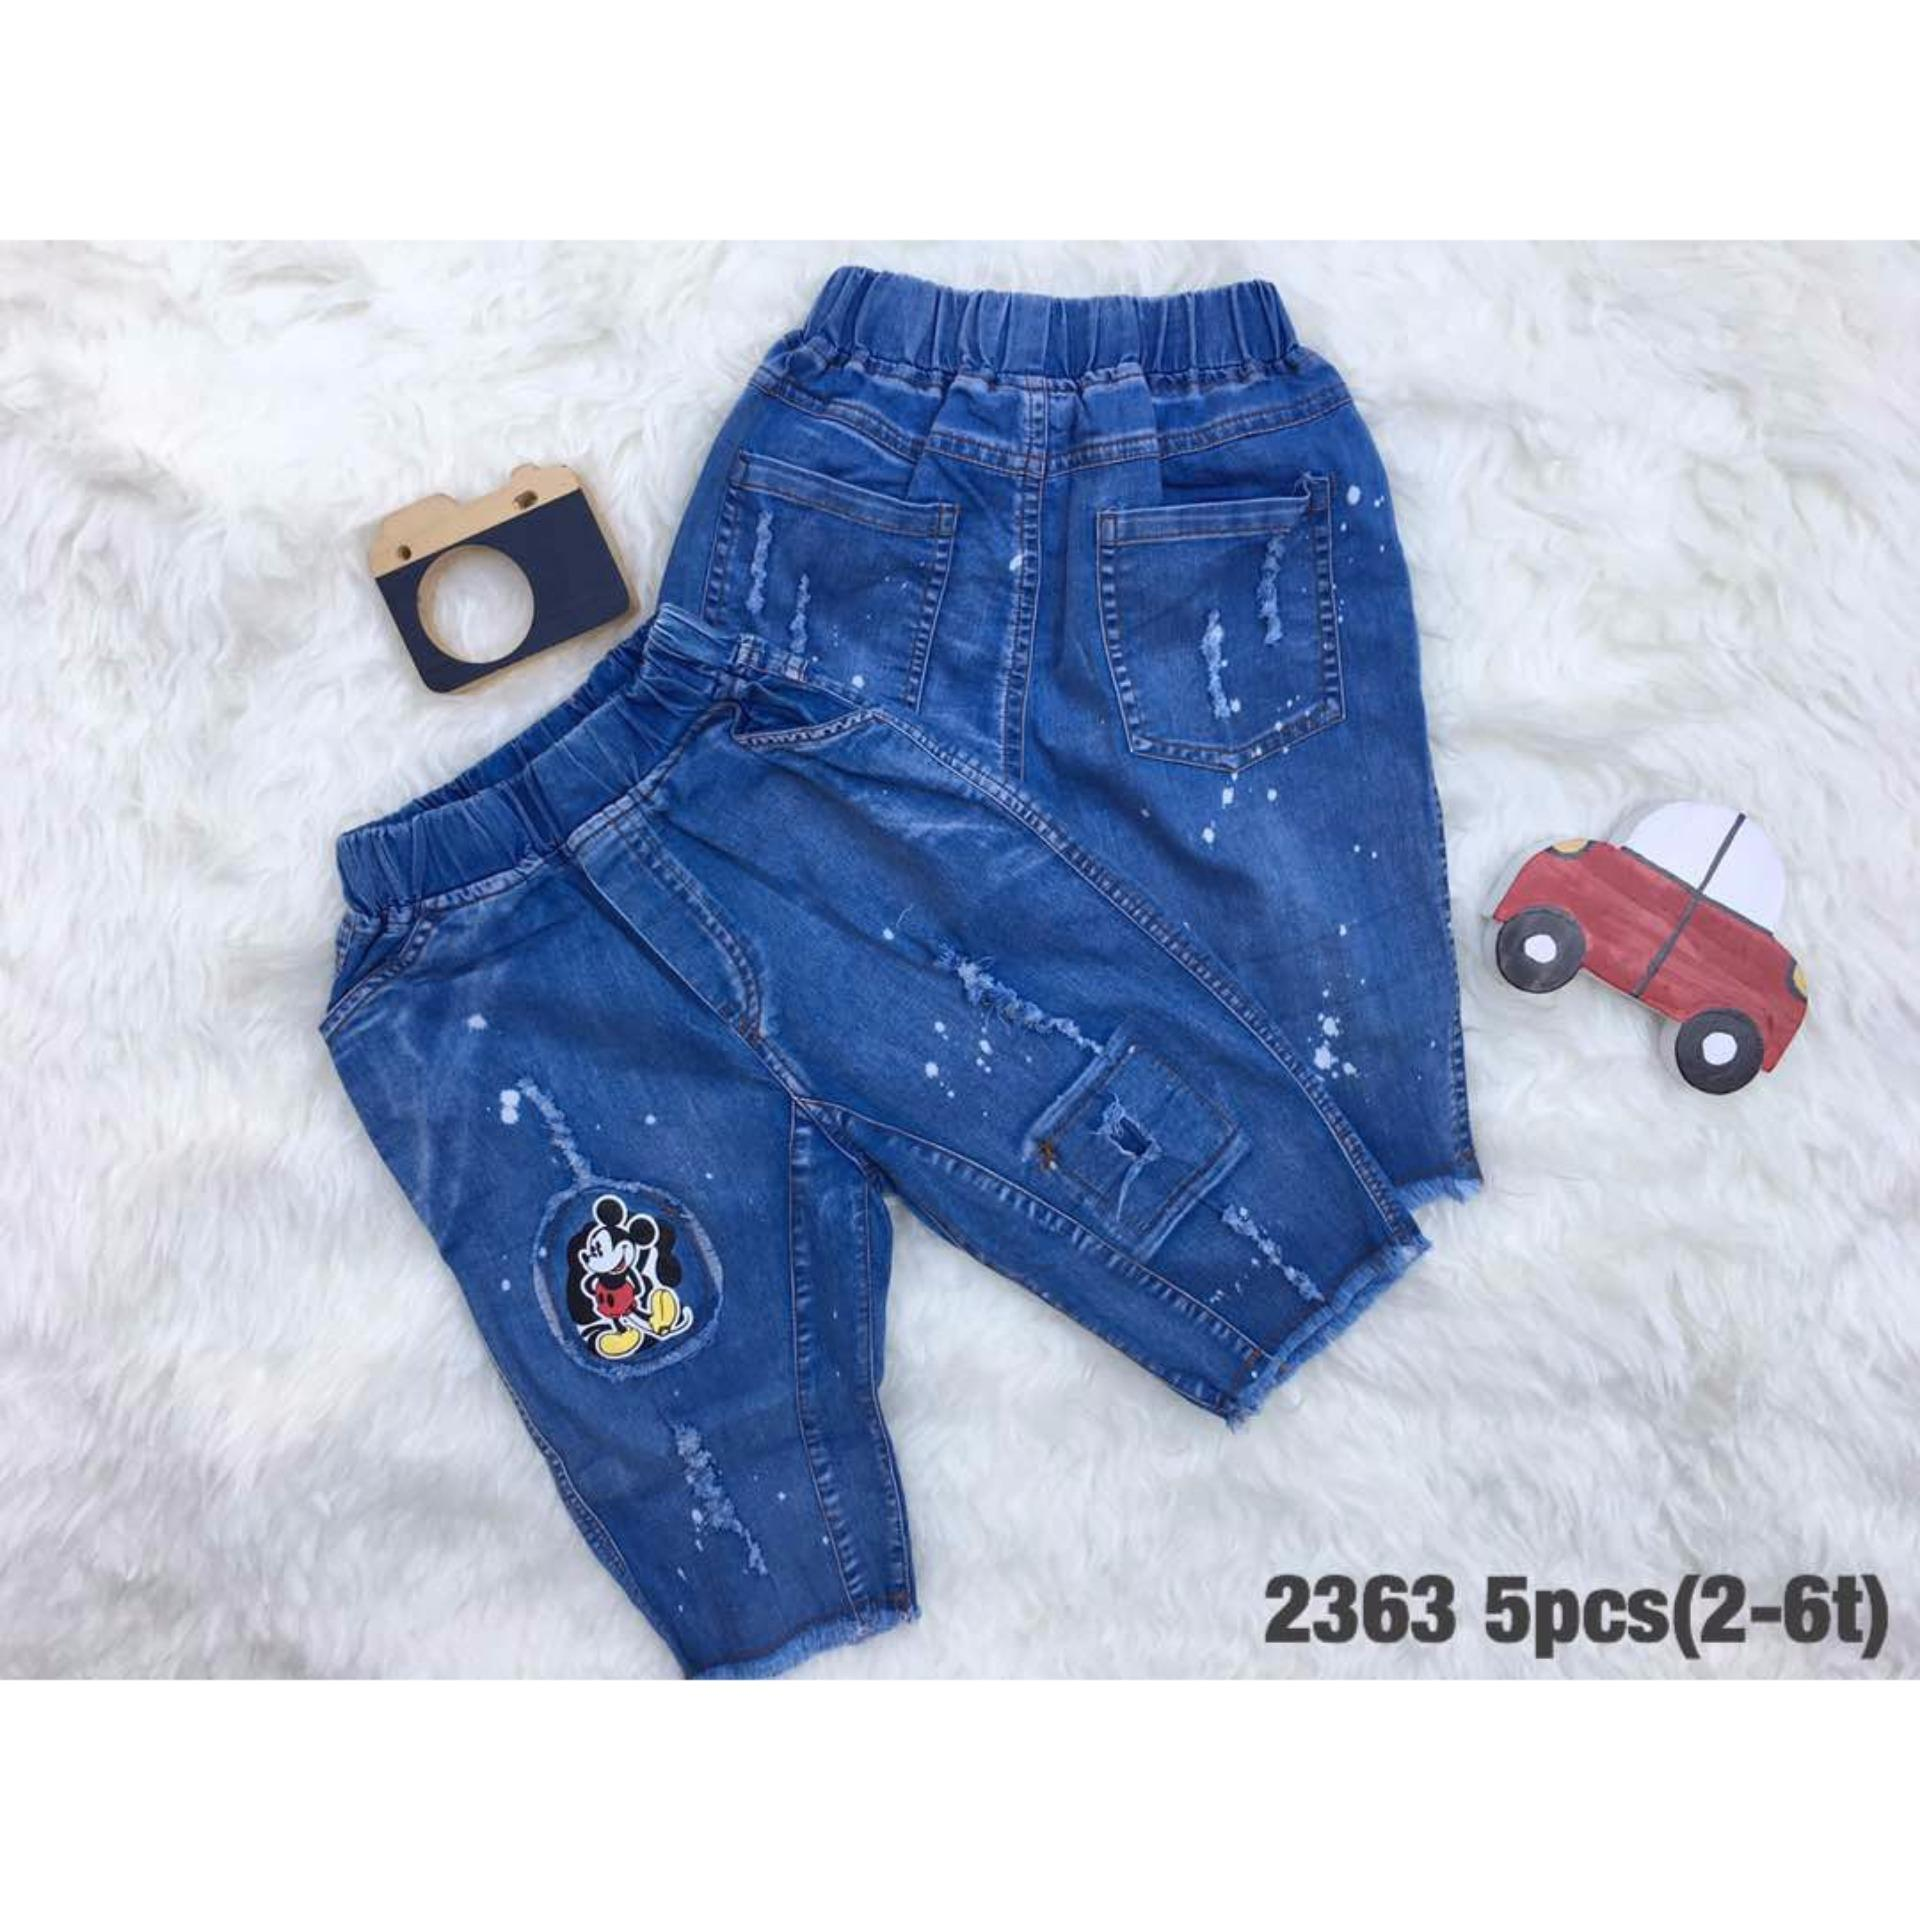 ... Blue Source · CELANA JOGER JEANS OSHKOSH BIRU SEDANG Celana Anak Oshkosh Jogger Jeans Source